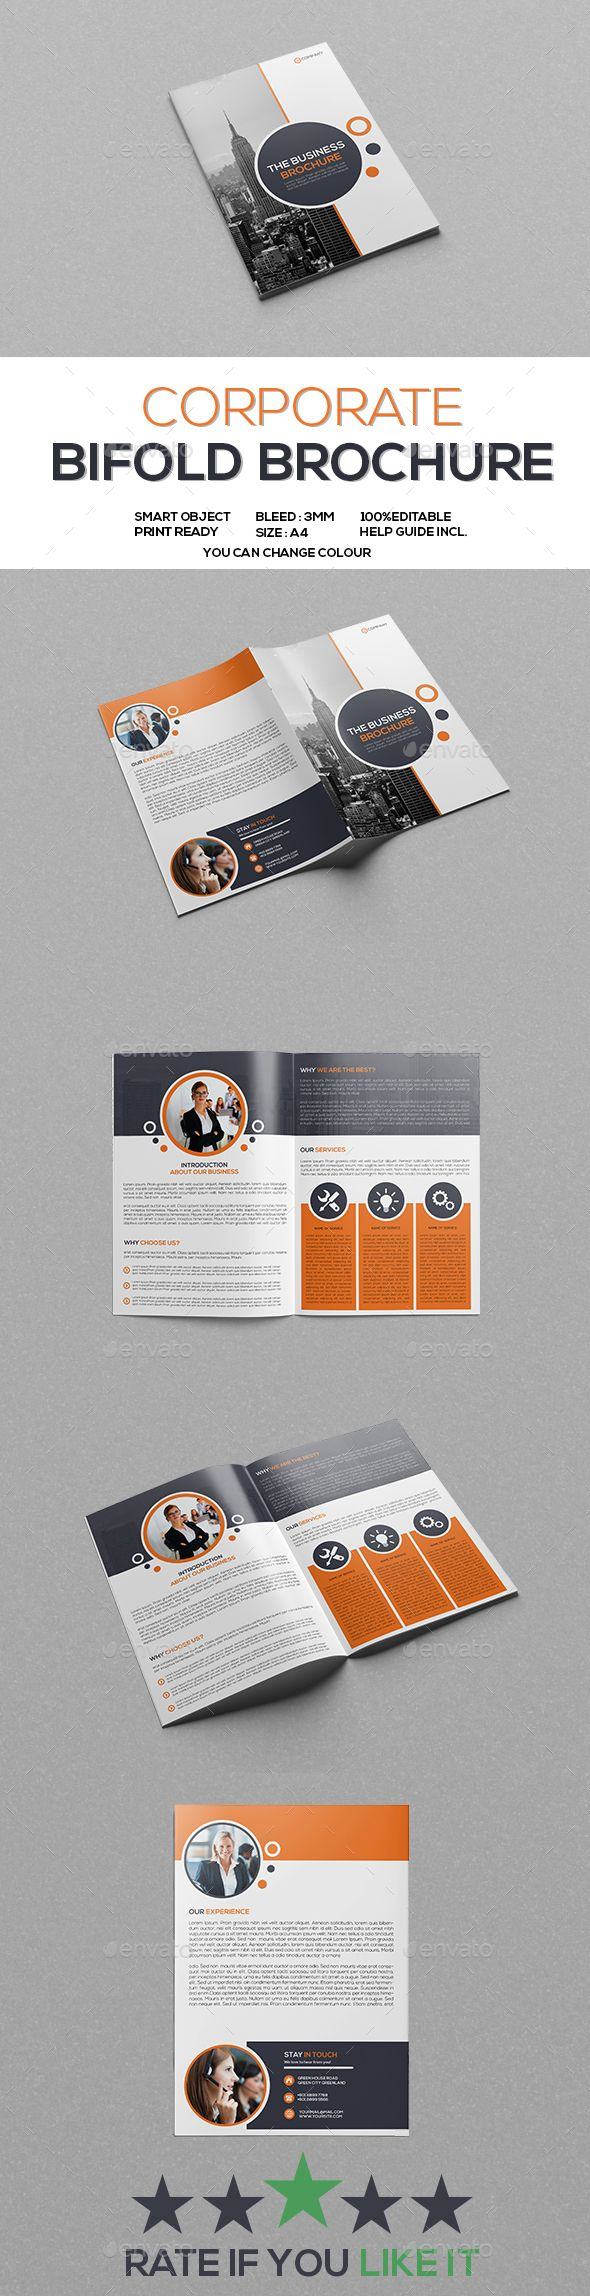 Corporate Bifold Brochure Corporate Bifold Brochure Template. Best for promoting your commercial services as well for multipurpose! Everything is editable well organized & print ready.